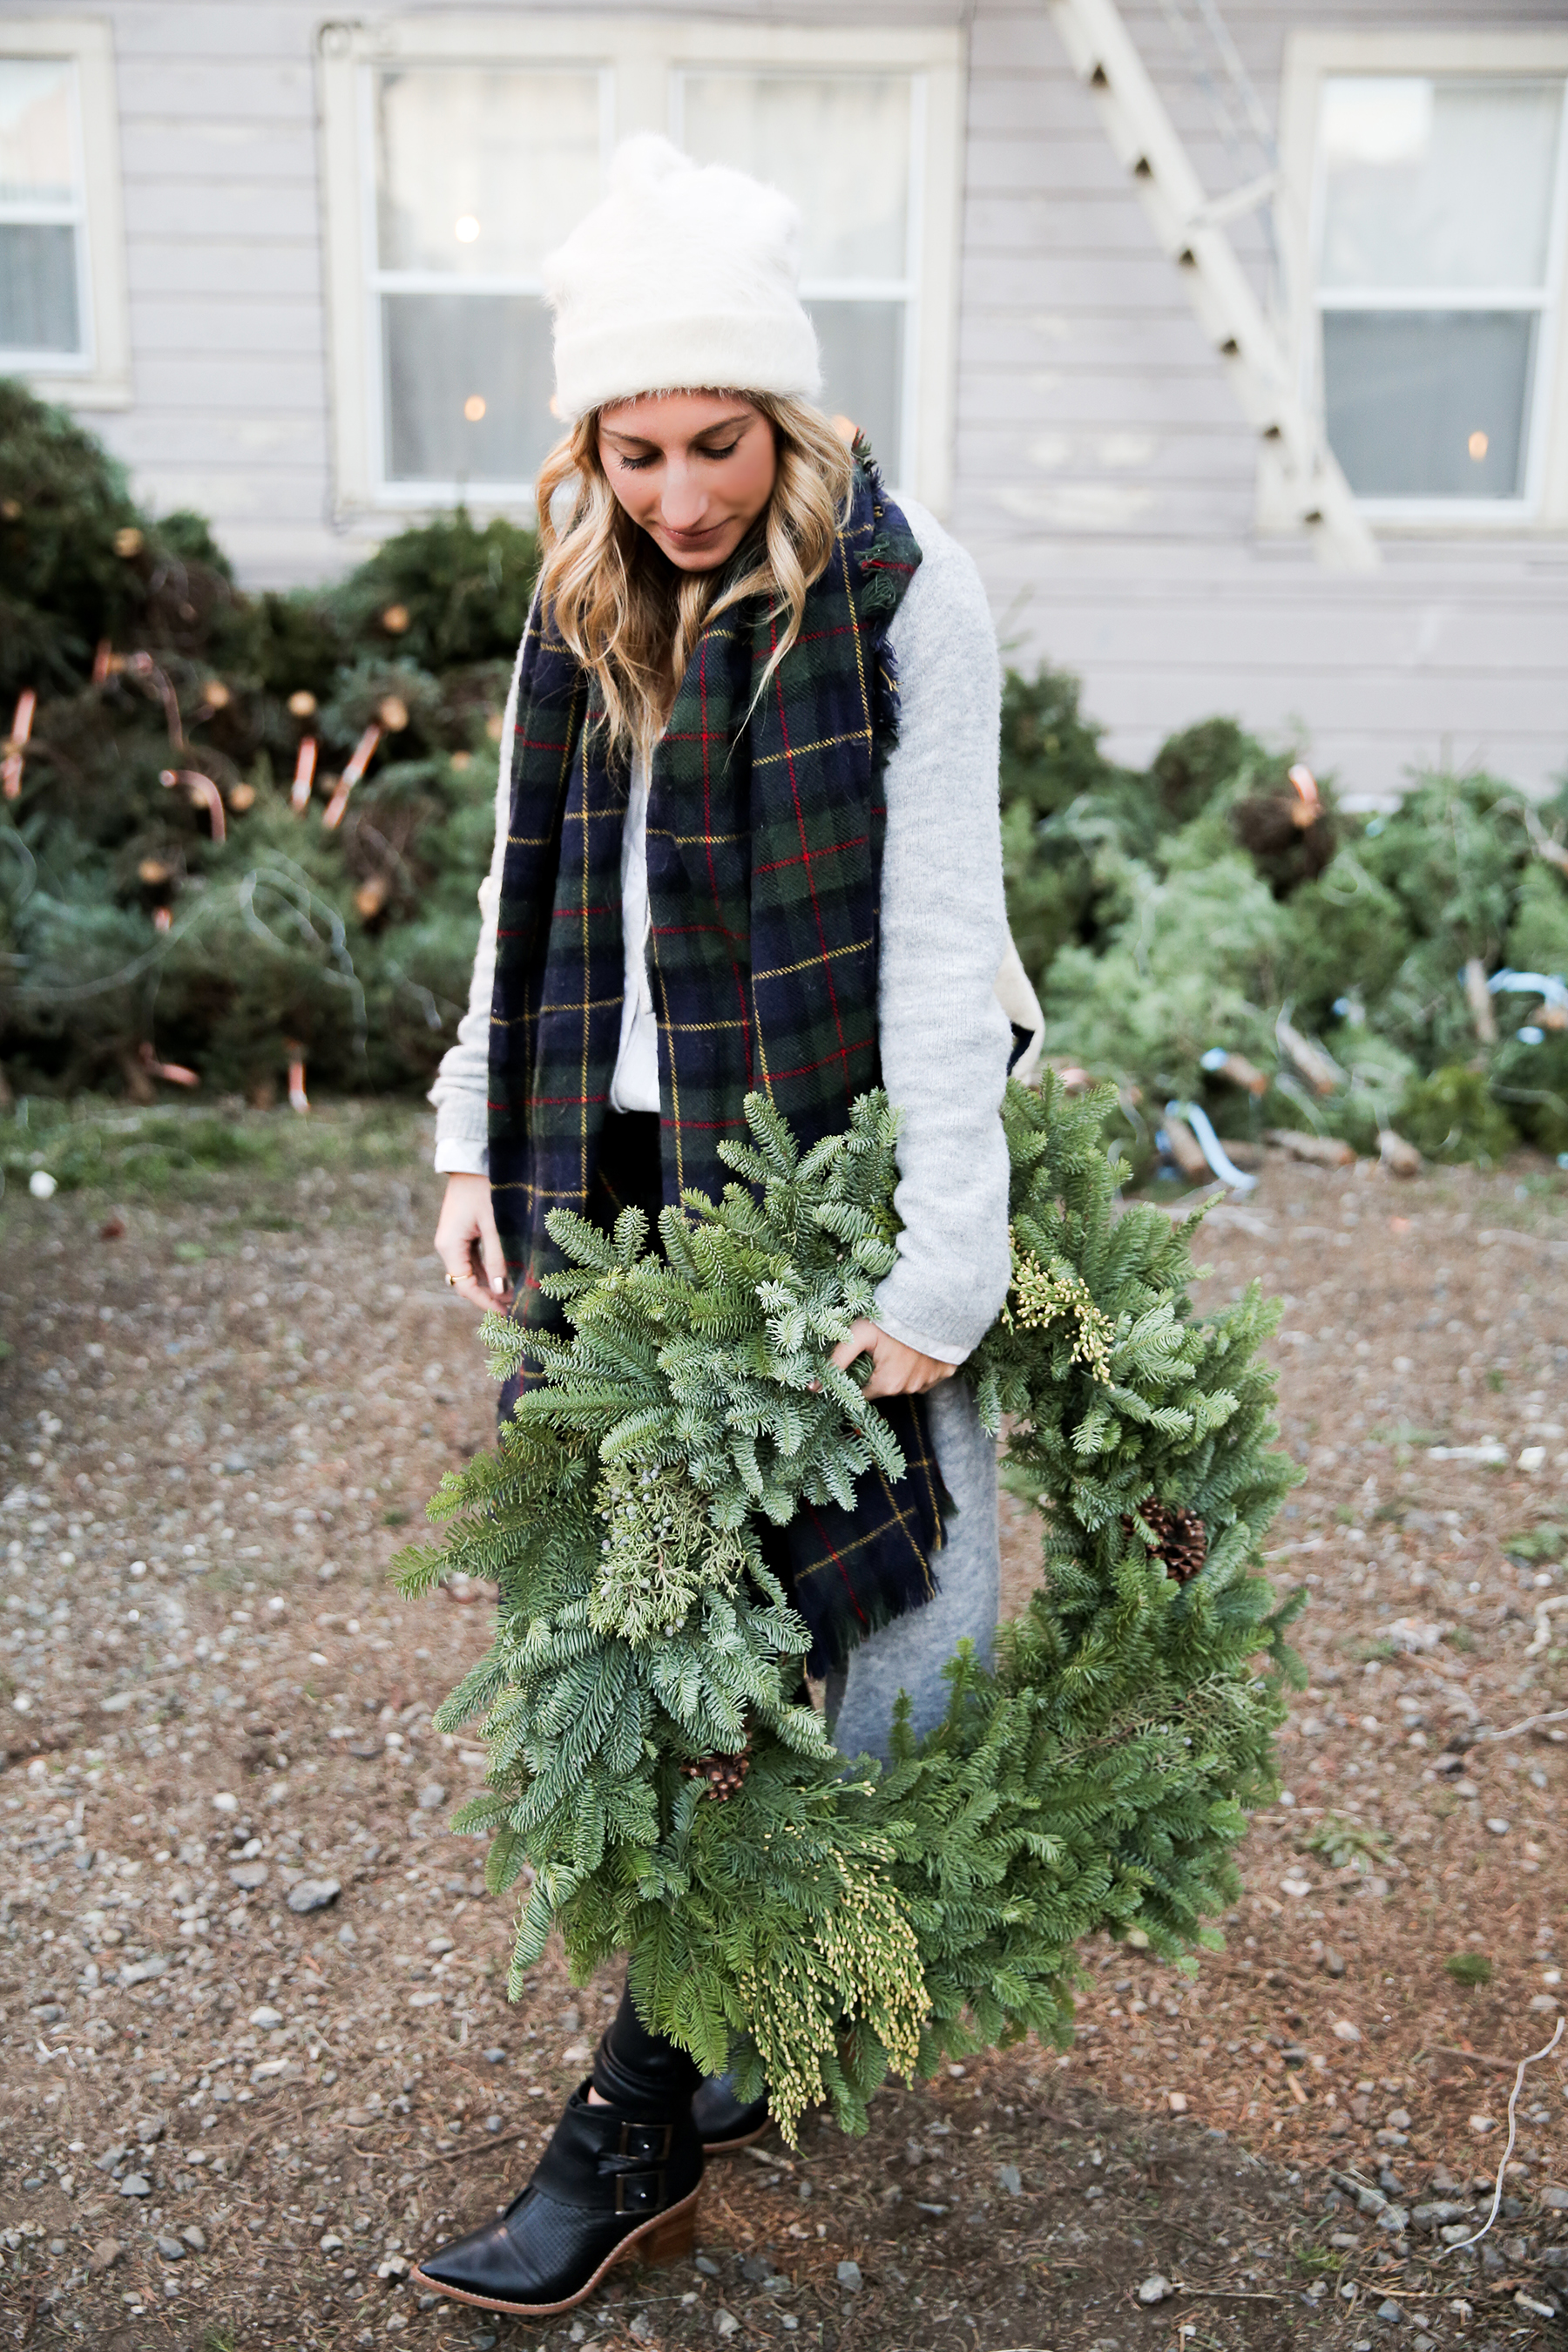 christmas tree lot outfit, holiday outfit, plaid scarf, gray cardigan, holiday outfit ideas, winter outfits, black ankle boots, faux leather pants, photos by Andrea Posadas of Amanda Holstein for Advicefroma20Something.com